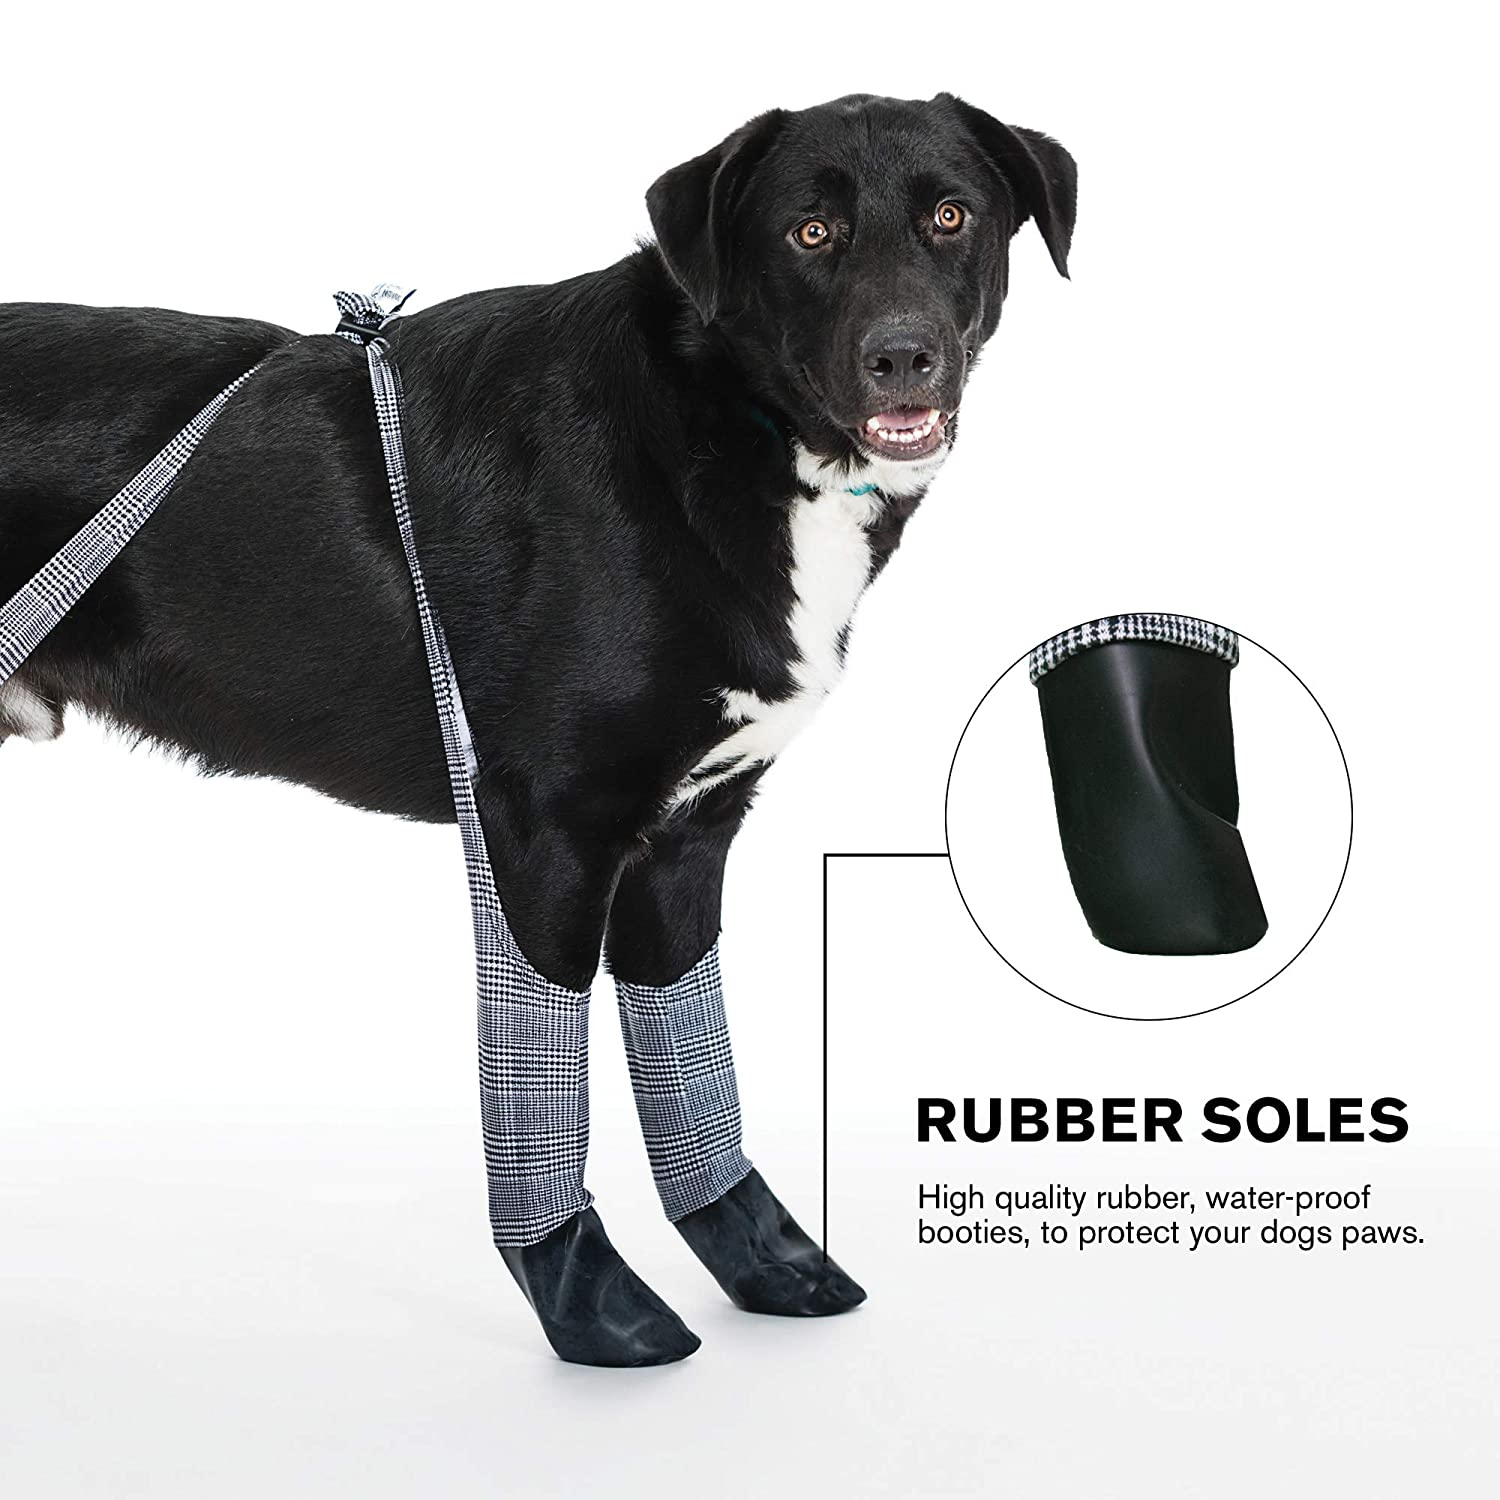 Keep Your Dogs Feet Clean and Dry Without The Hassle of Boots Walkee Paws Waterproof Dog Leggings Camoflauge